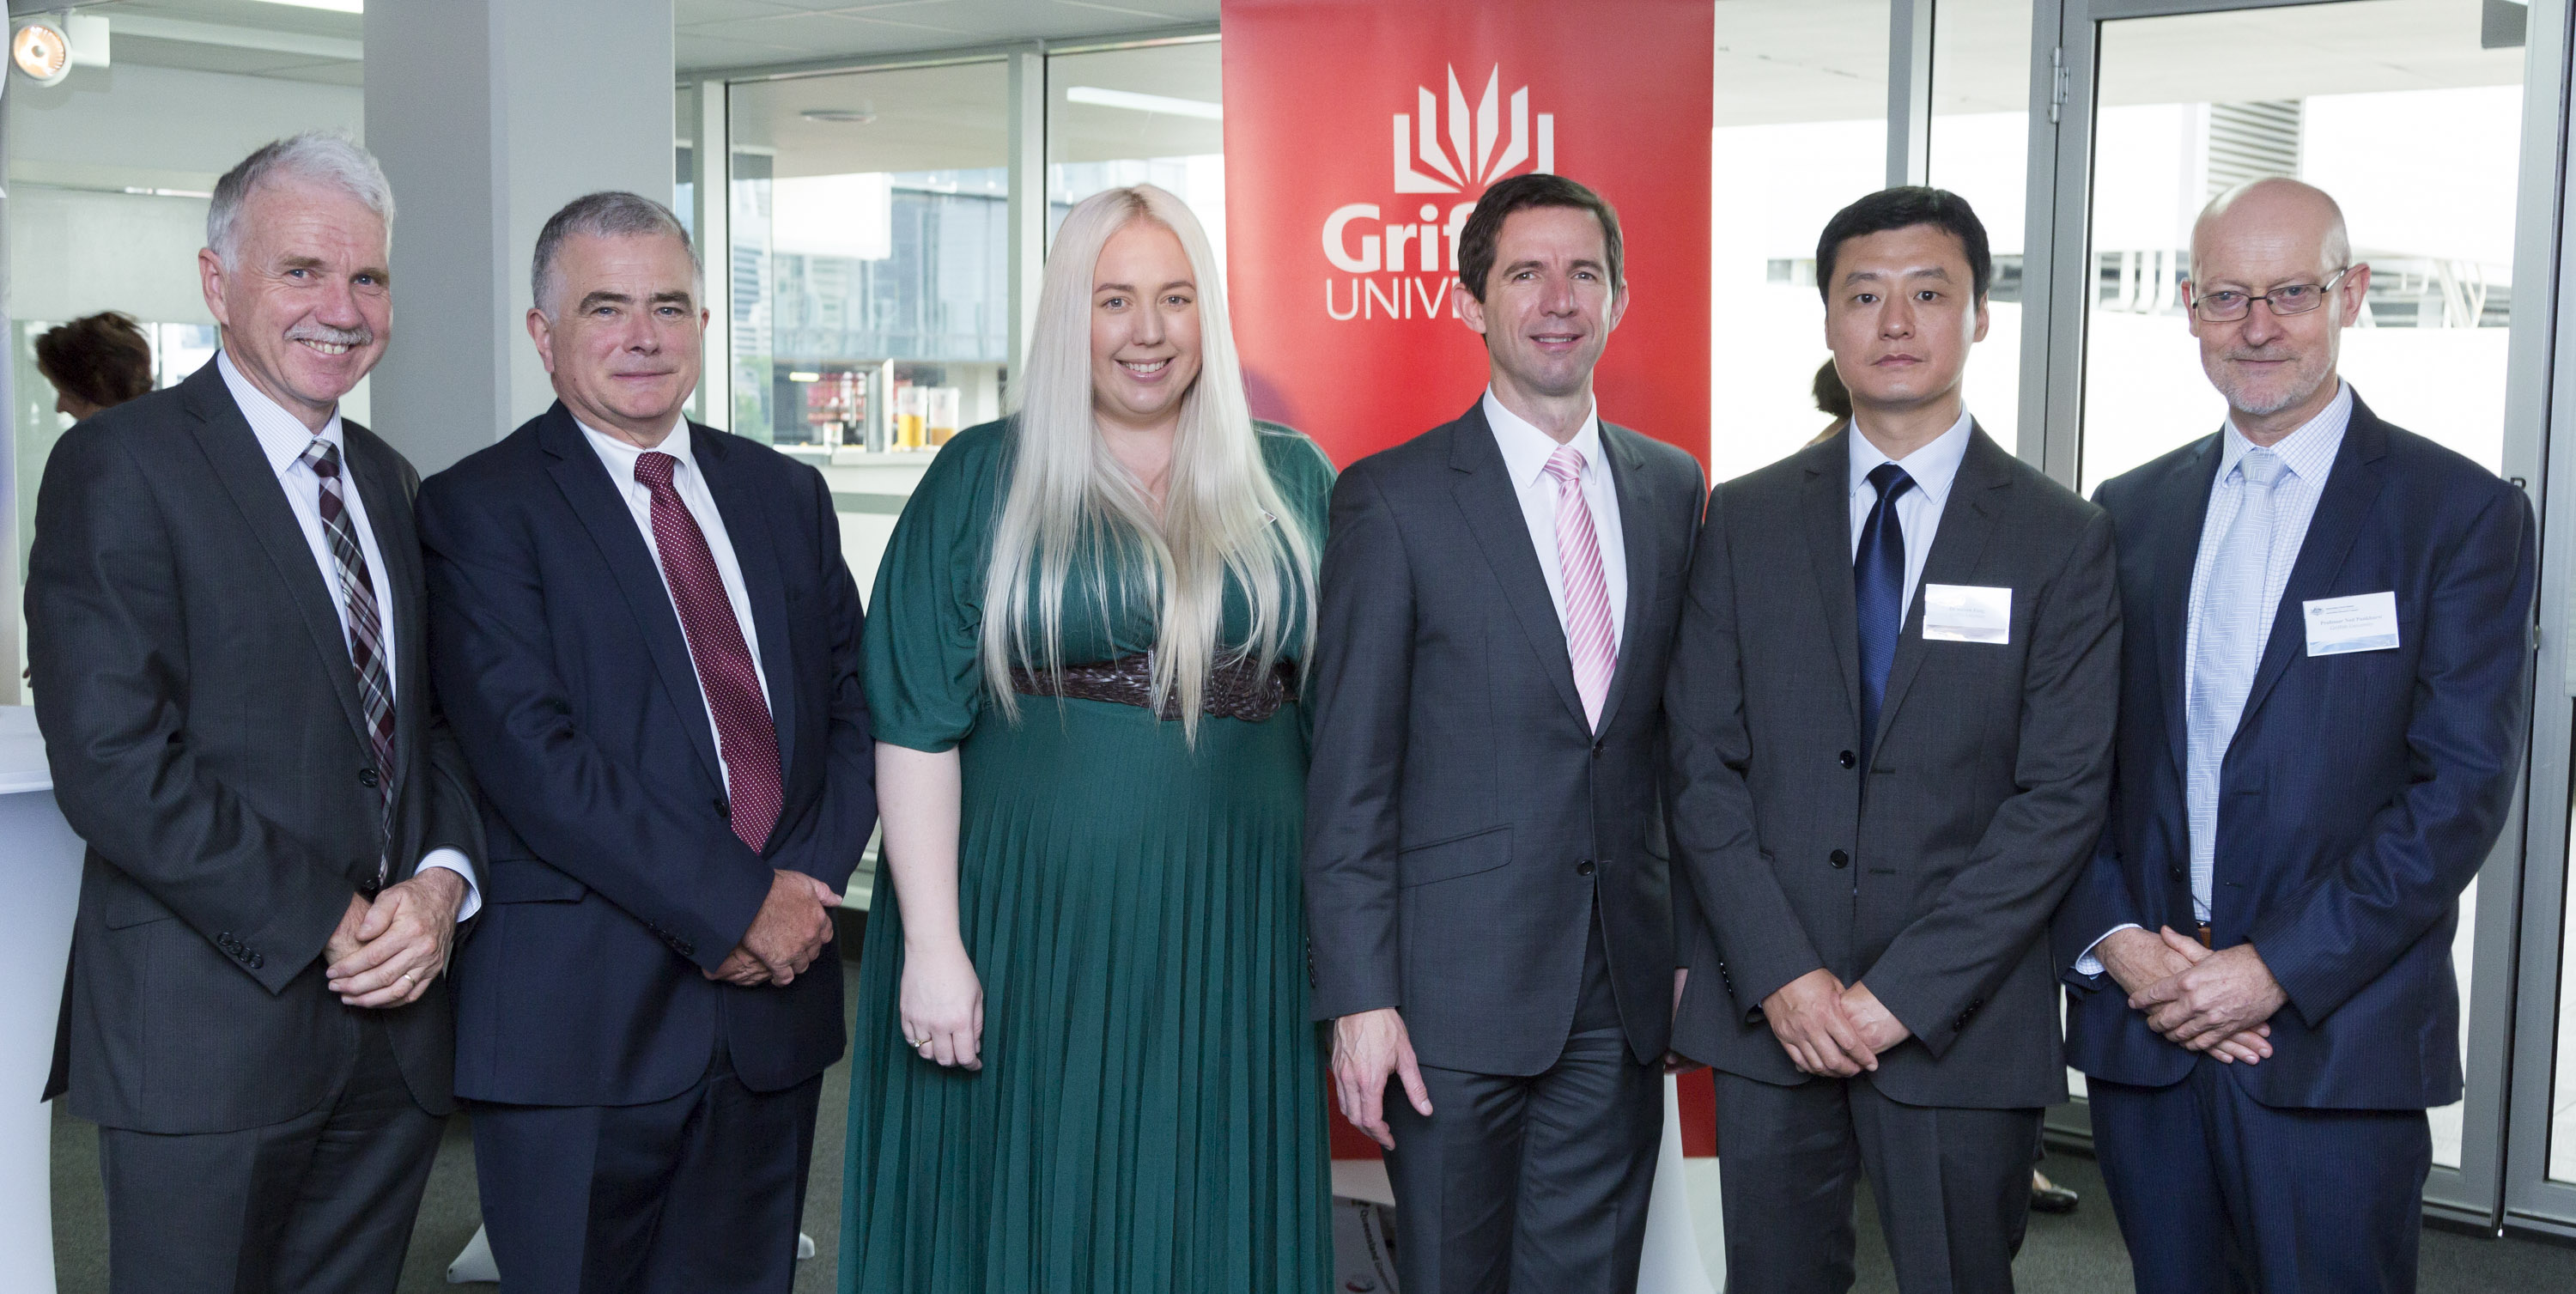 Professor Aidan Byrne (ARC), Professor Ian O'Connor, Dr Fiona Barlow, Senator Simon Birmingham, Dr Hui Feng and Professor Ned Pankhurst at the announcement.